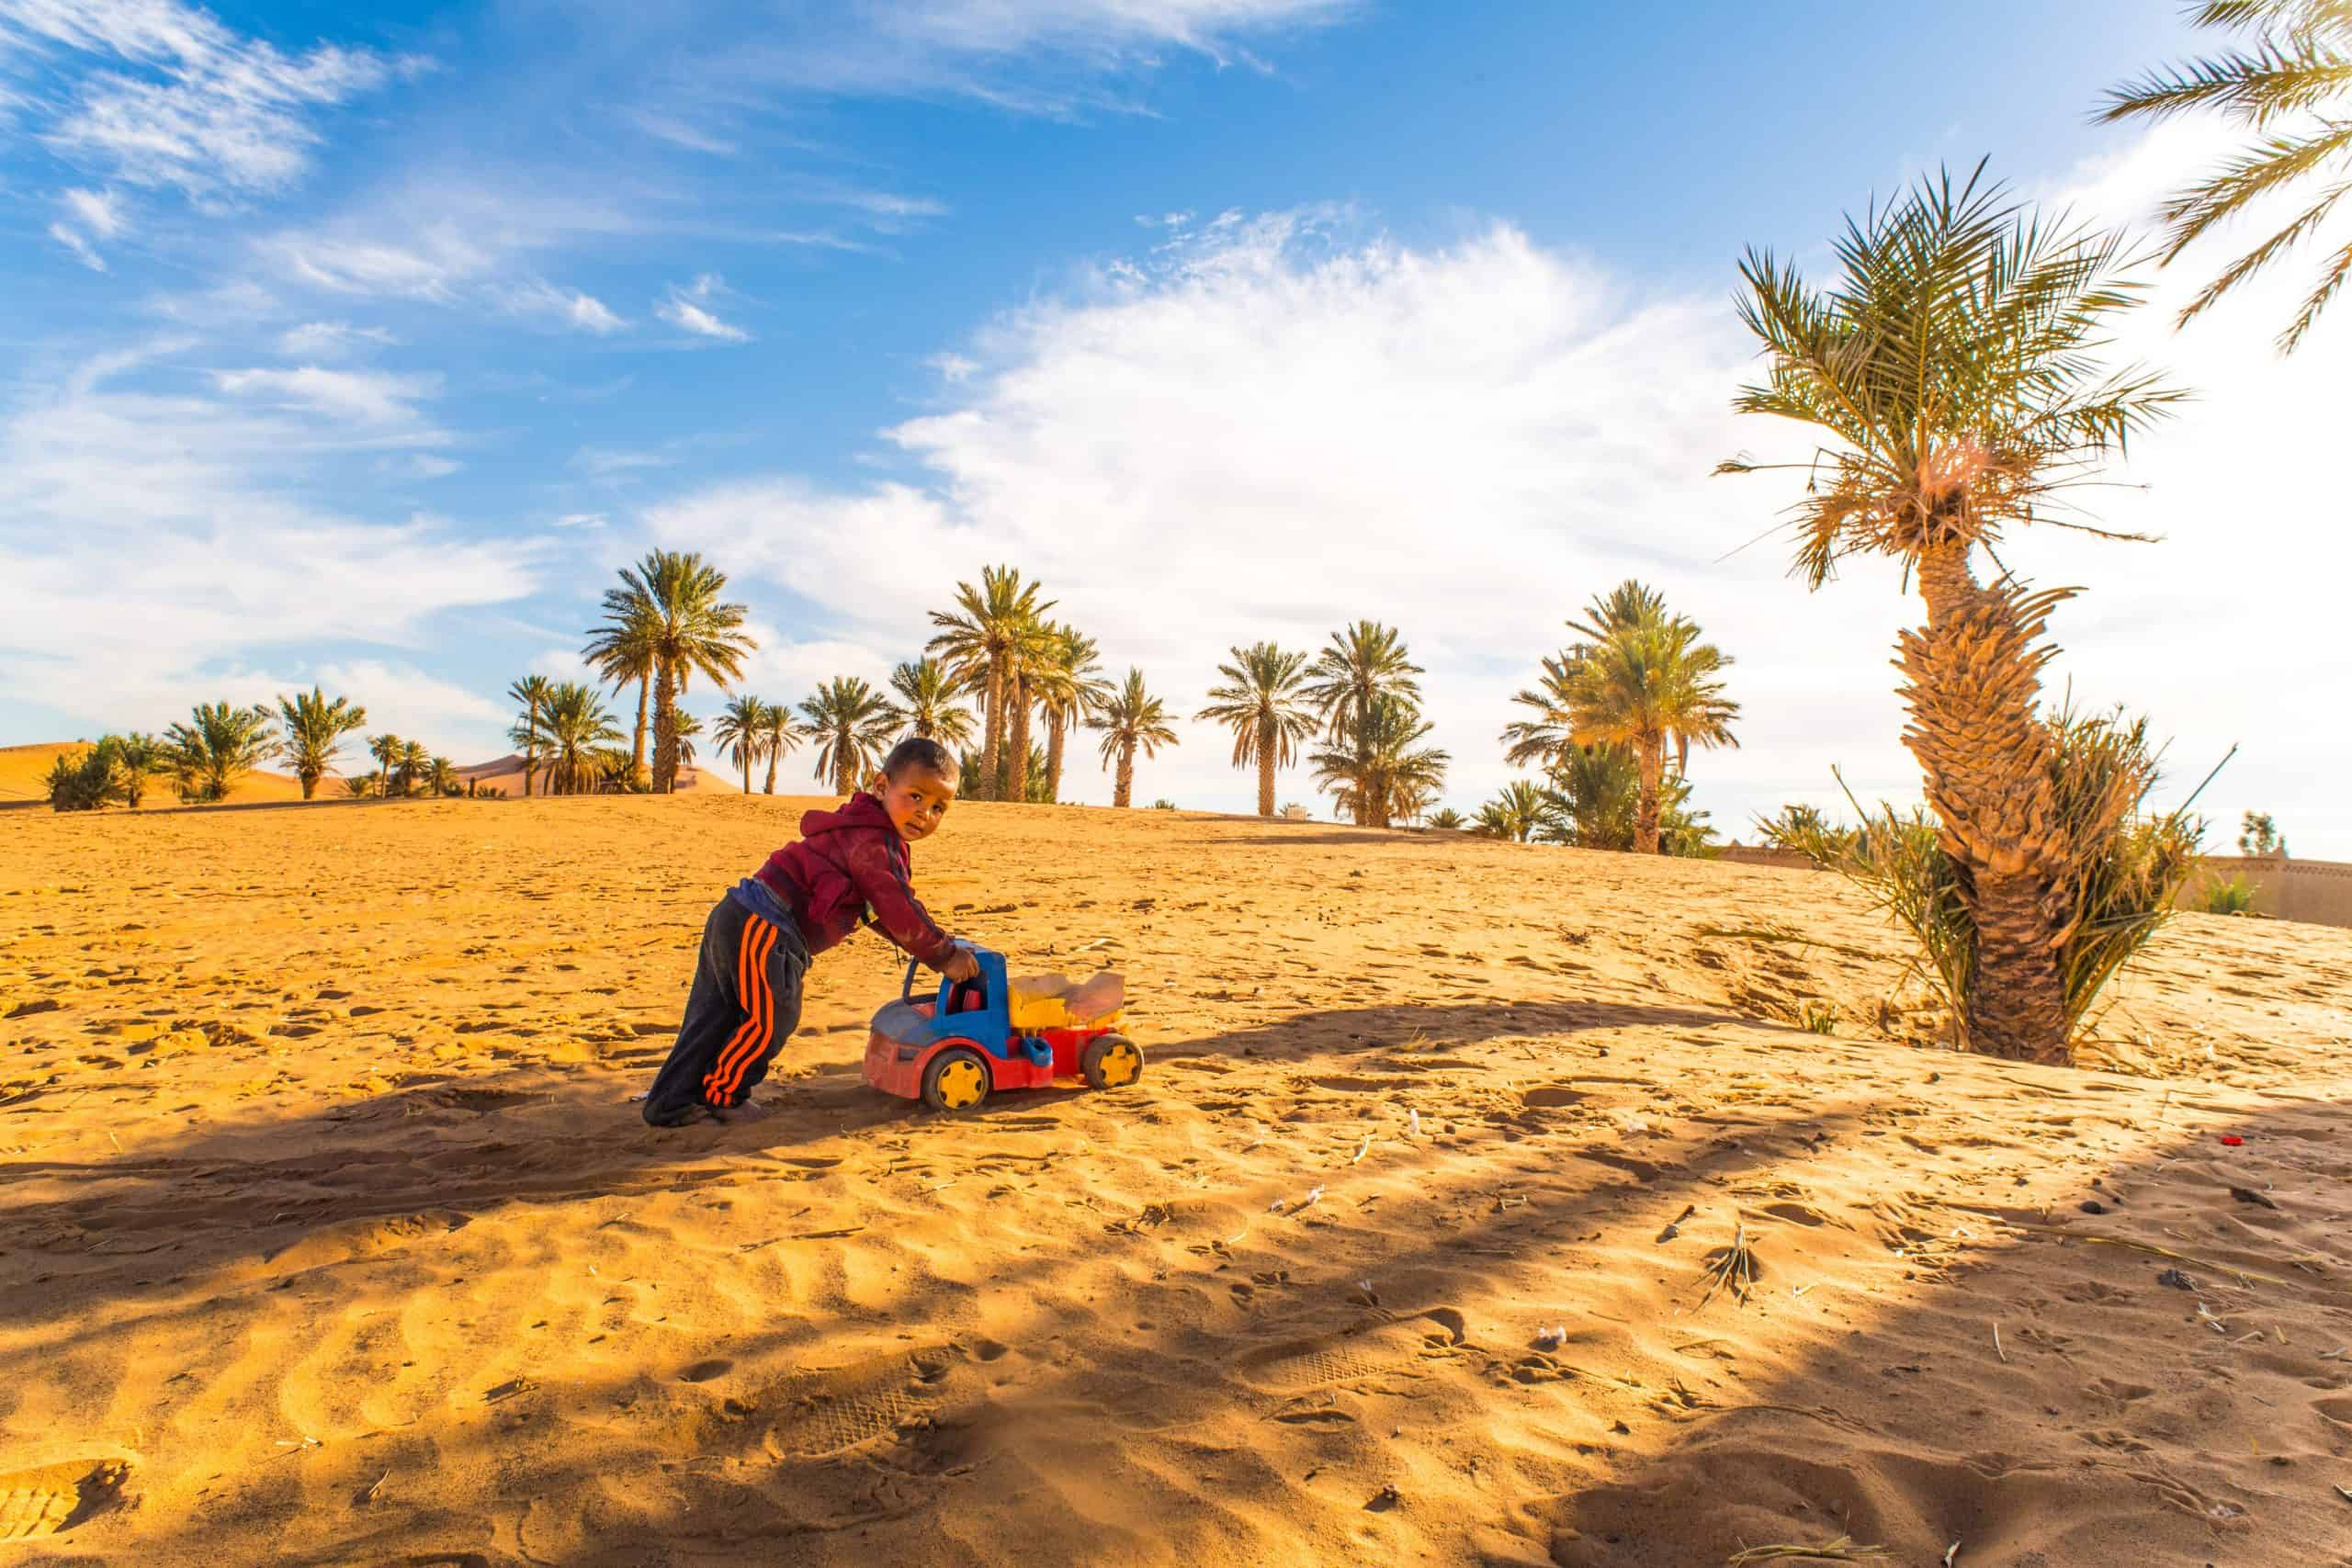 20 Best locations to visit in Morocco for pictures